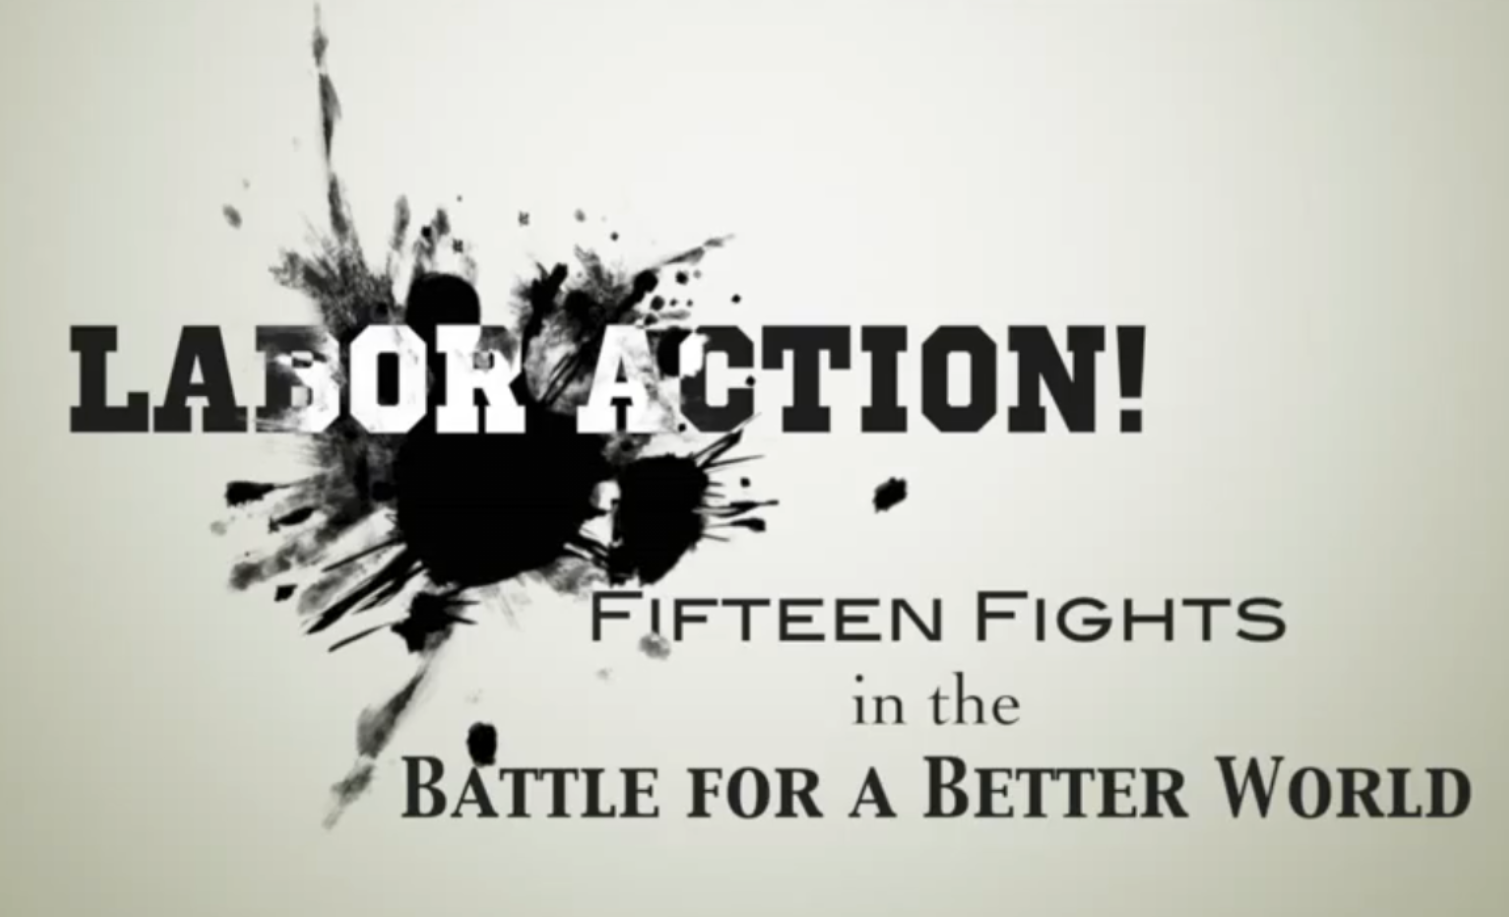 Labor Action! Fifteen Fights in the Battle for a Better World